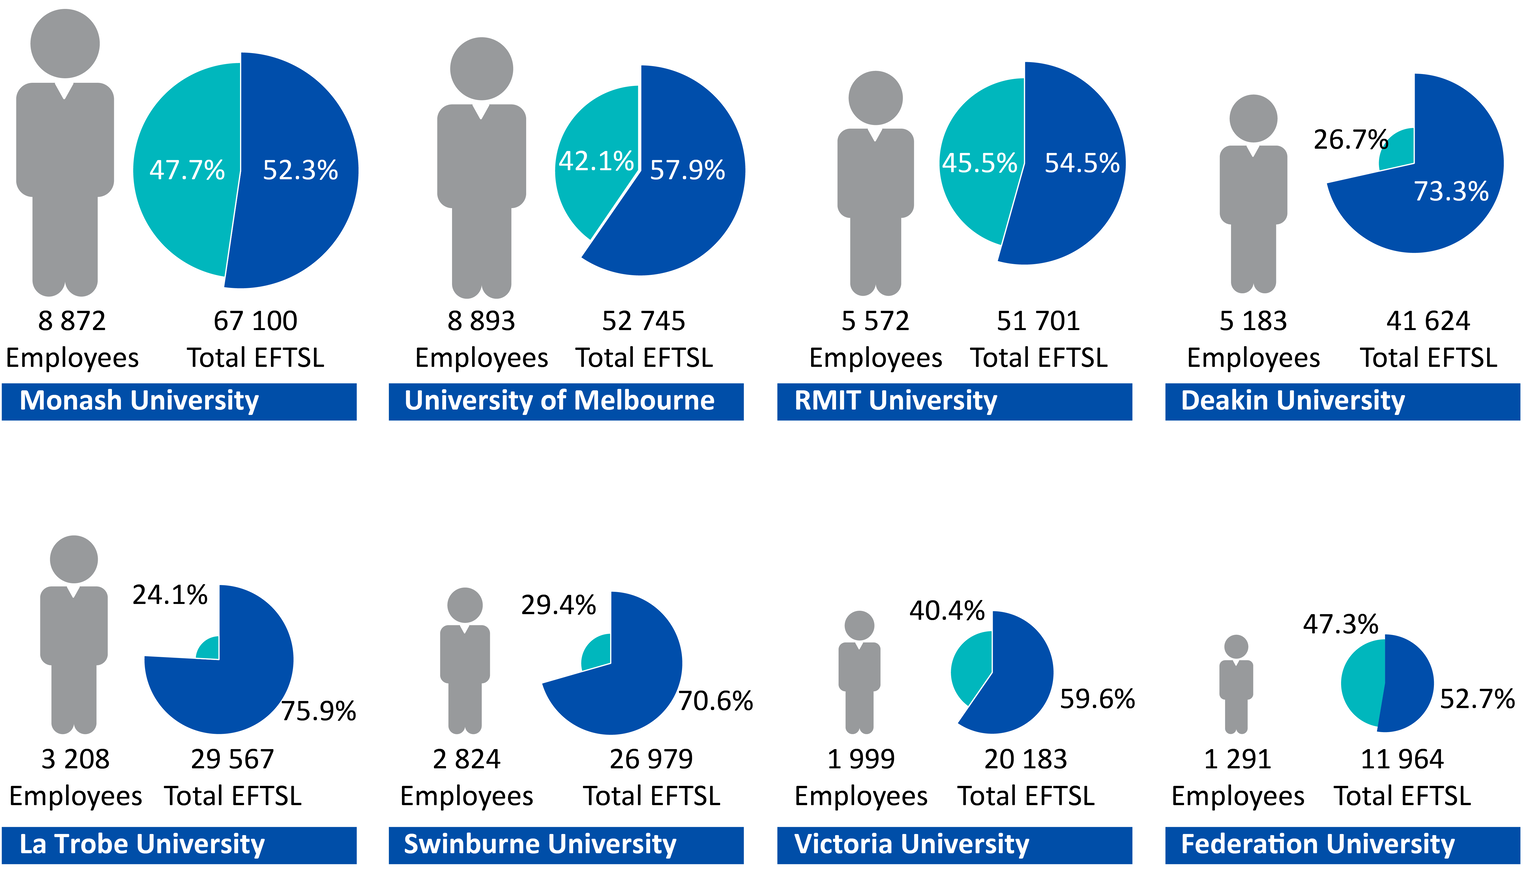 Figure 1C shows each university's relative size, based on the number of effective full-time students enrolled, and the number of staff employed.